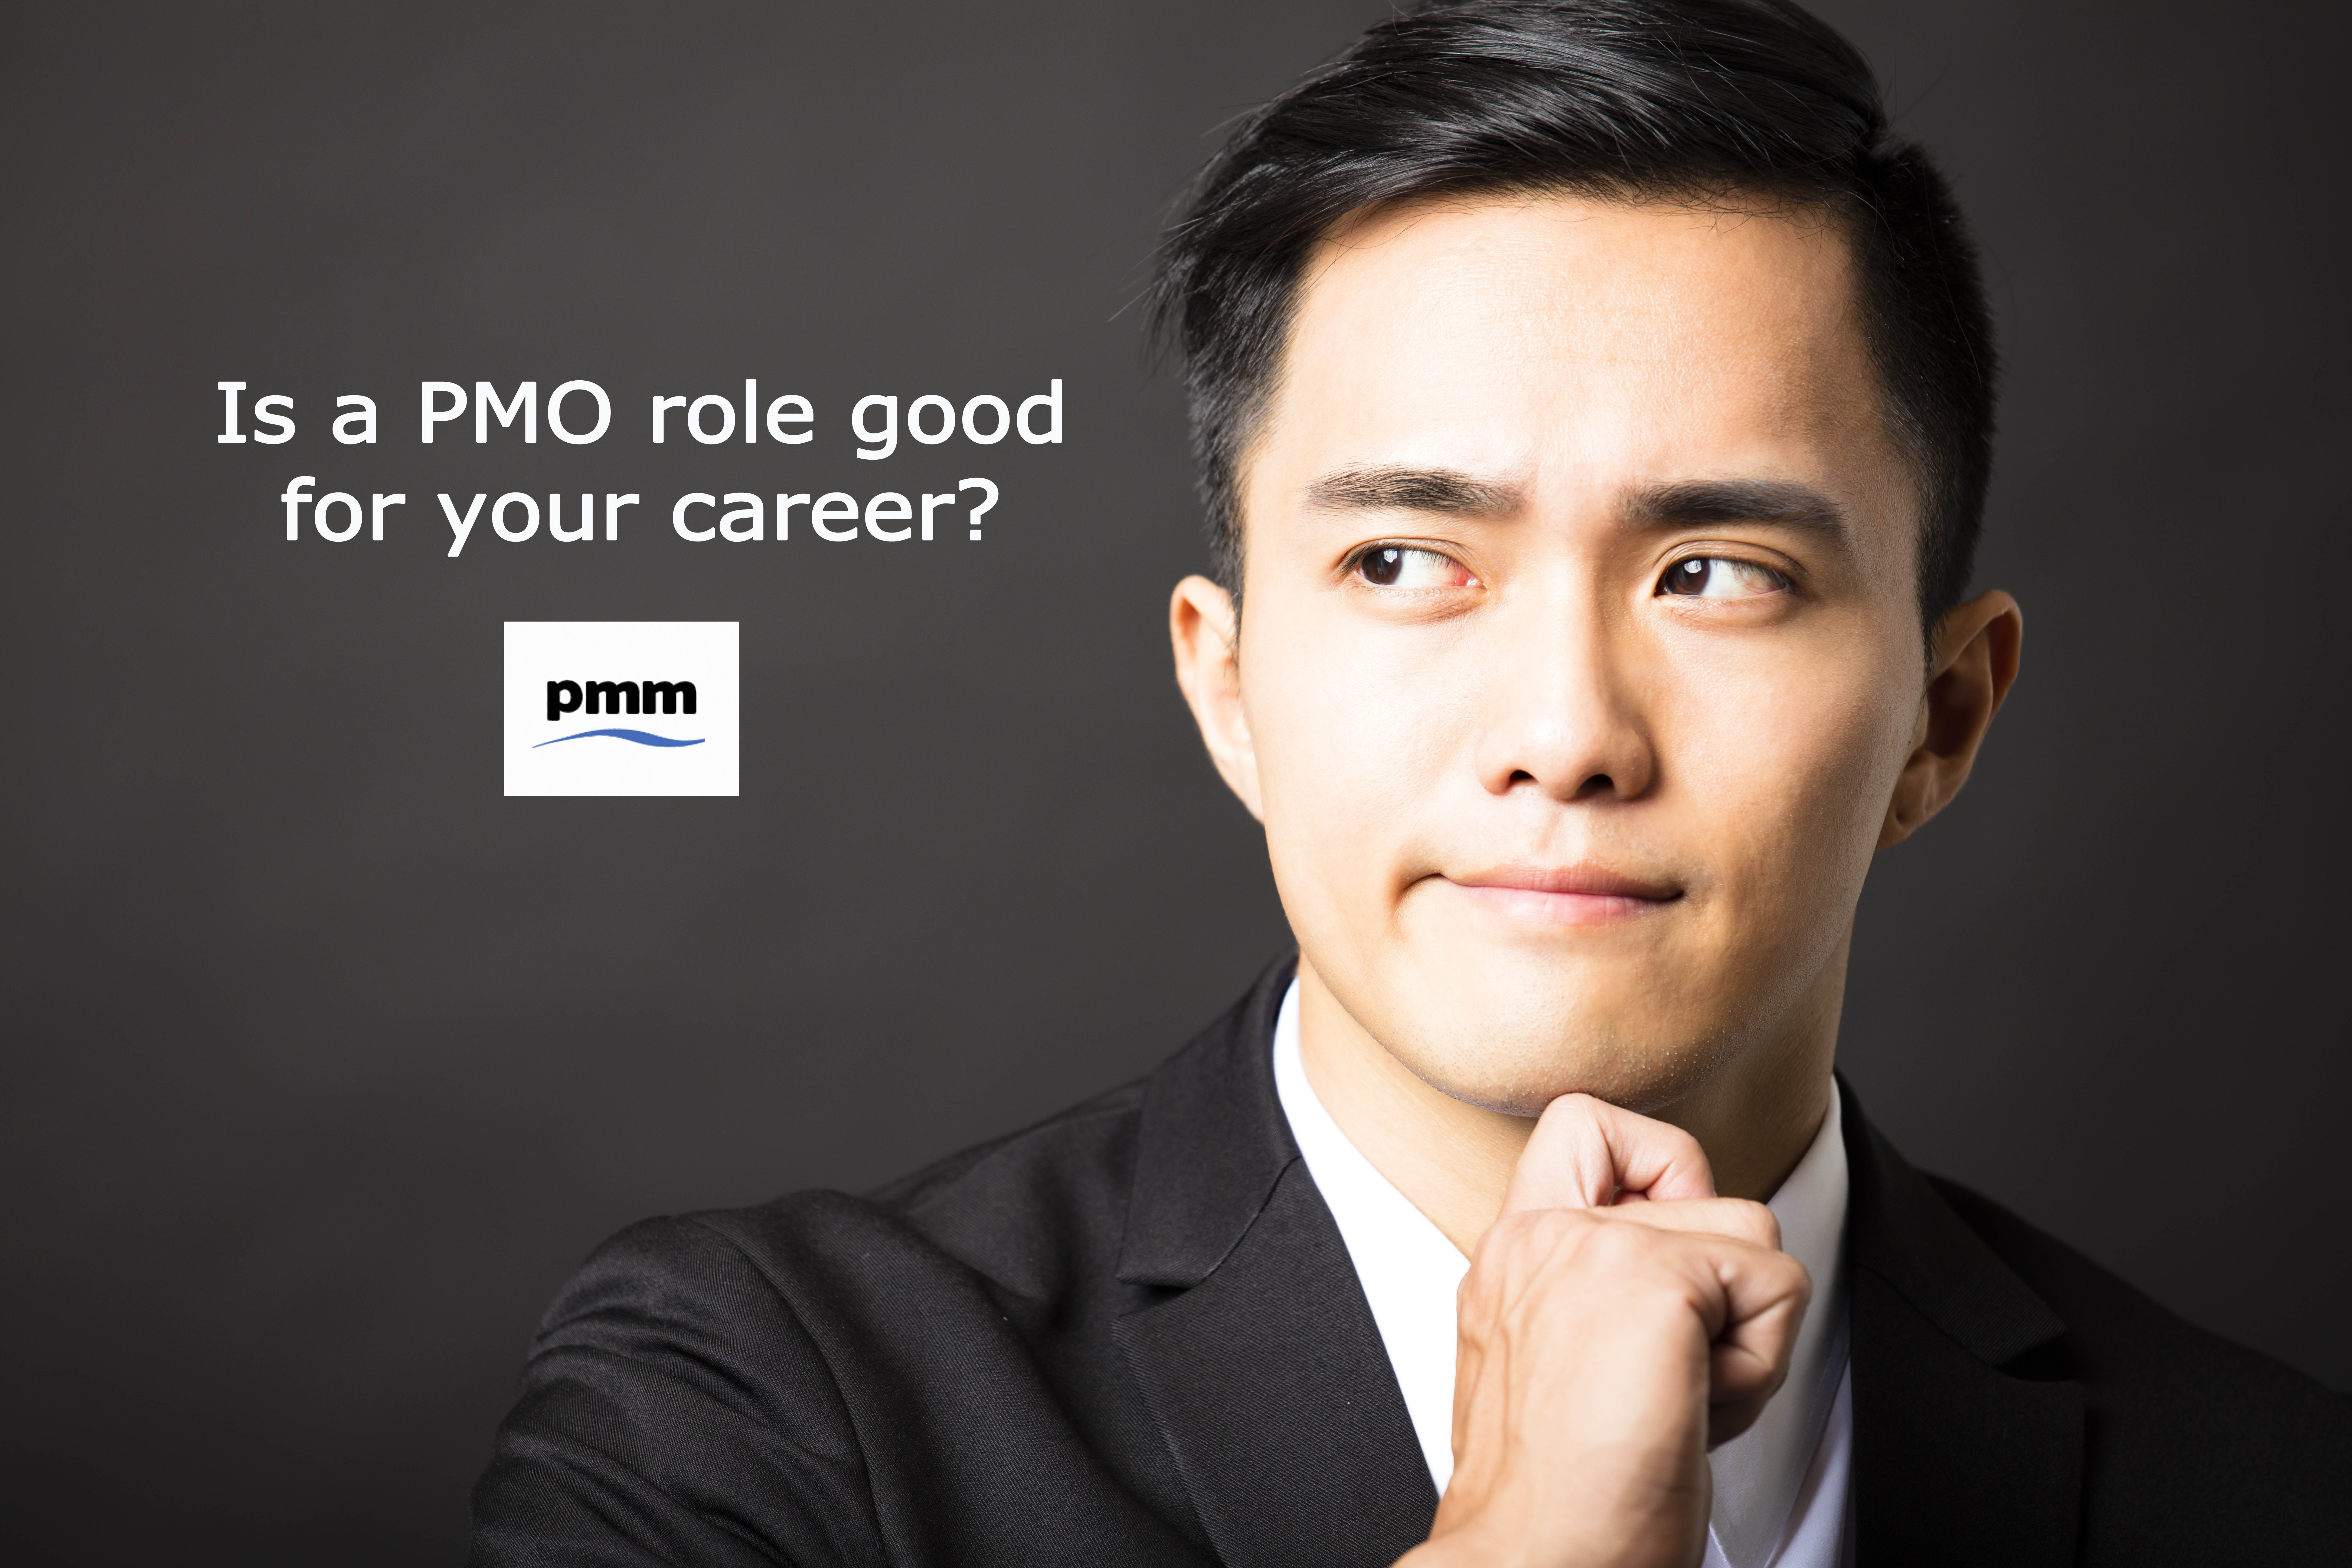 Is a PMO role good for your career